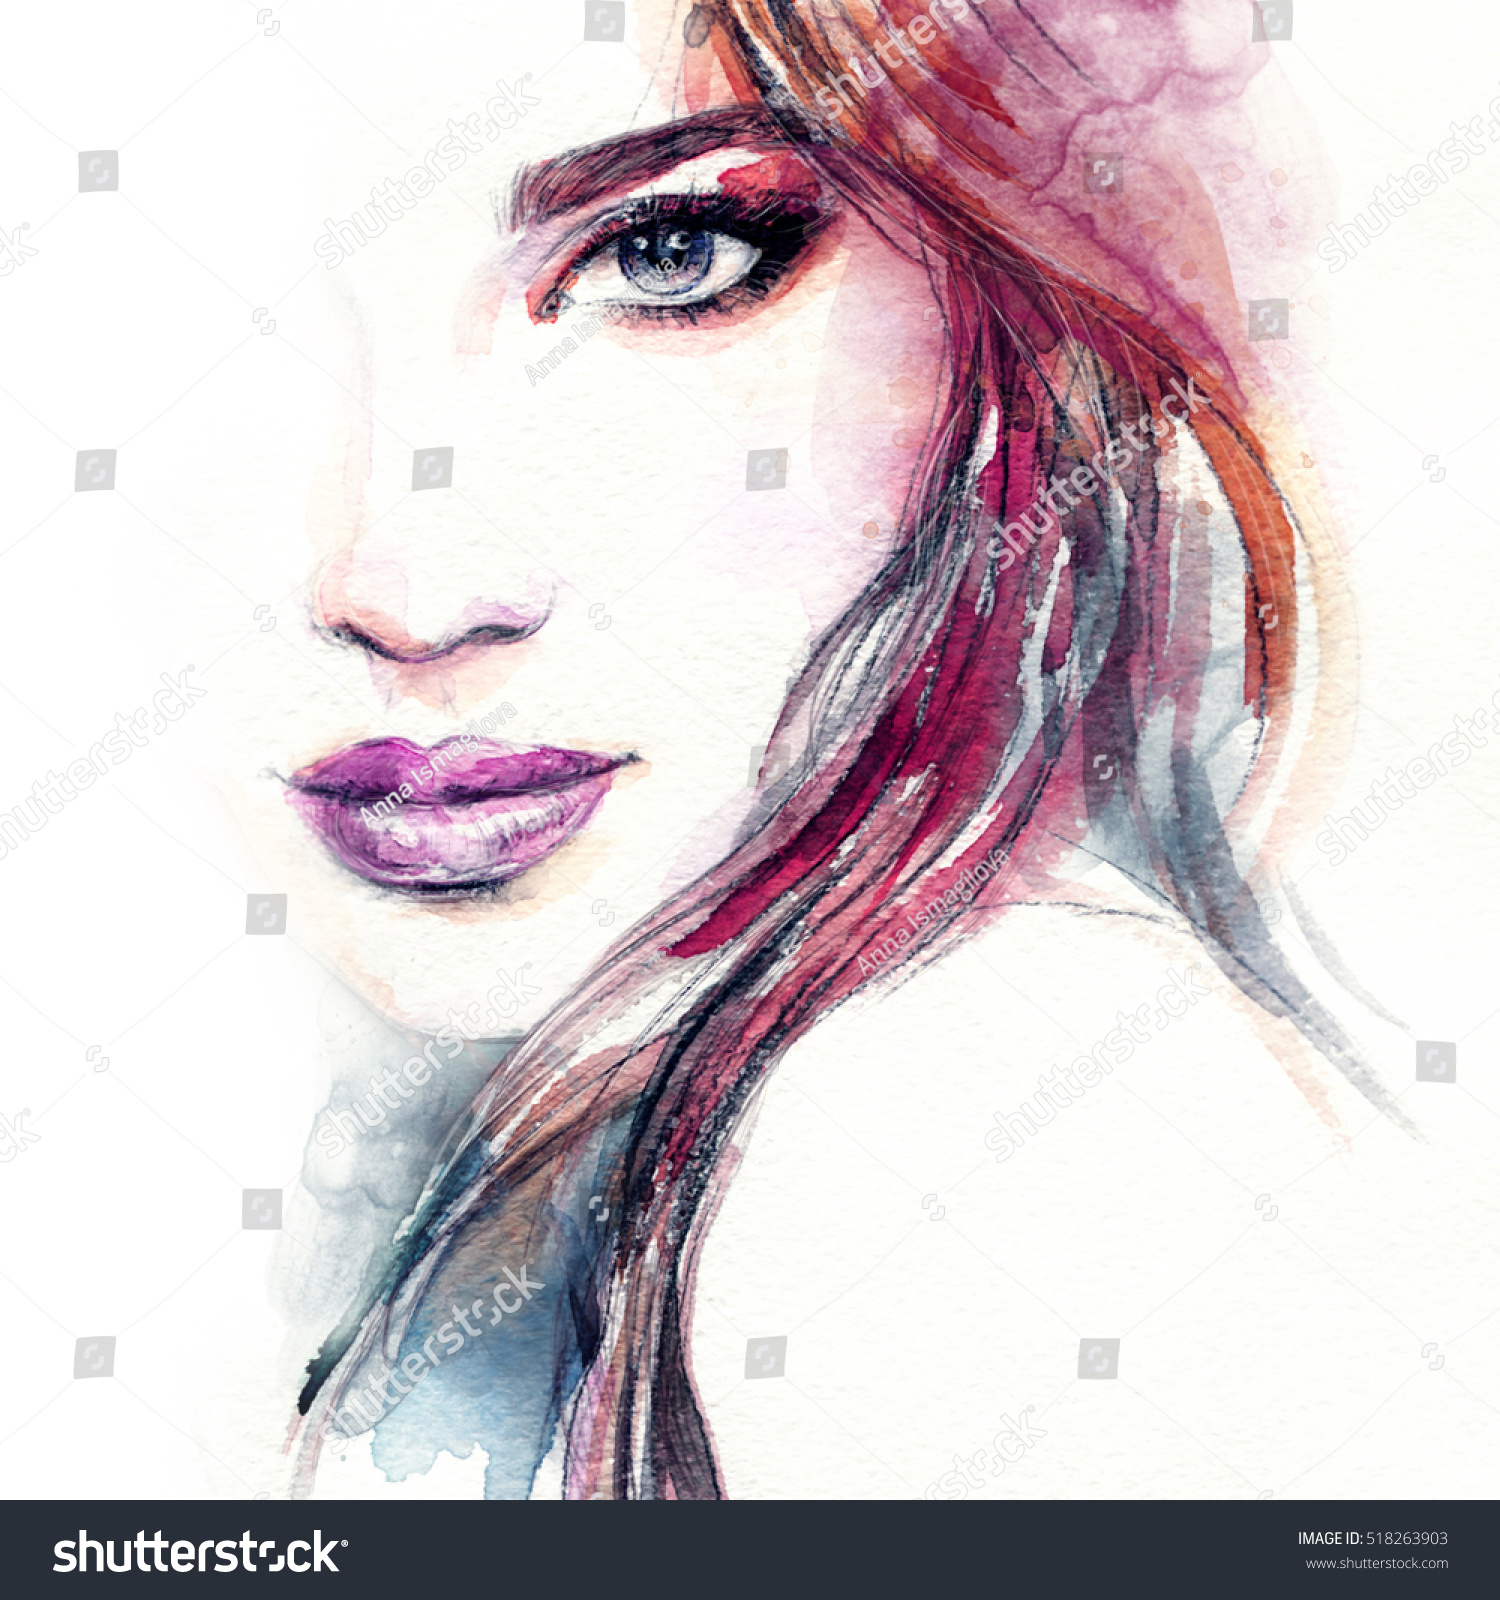 Abstract Woman Face Fashion Illustration Watercolor 518263903